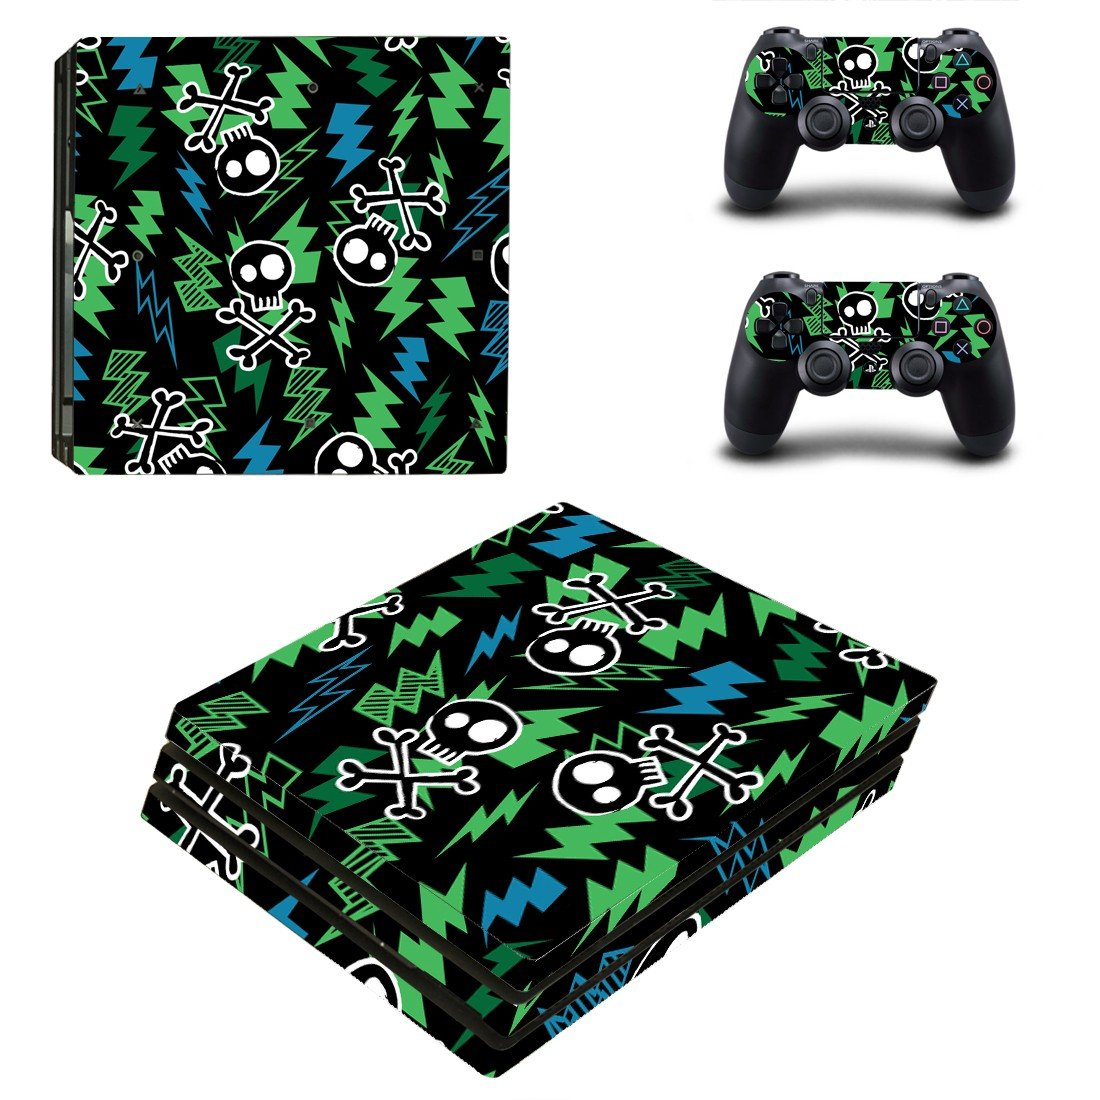 One piece ps4 pro skin decal for console and controllers